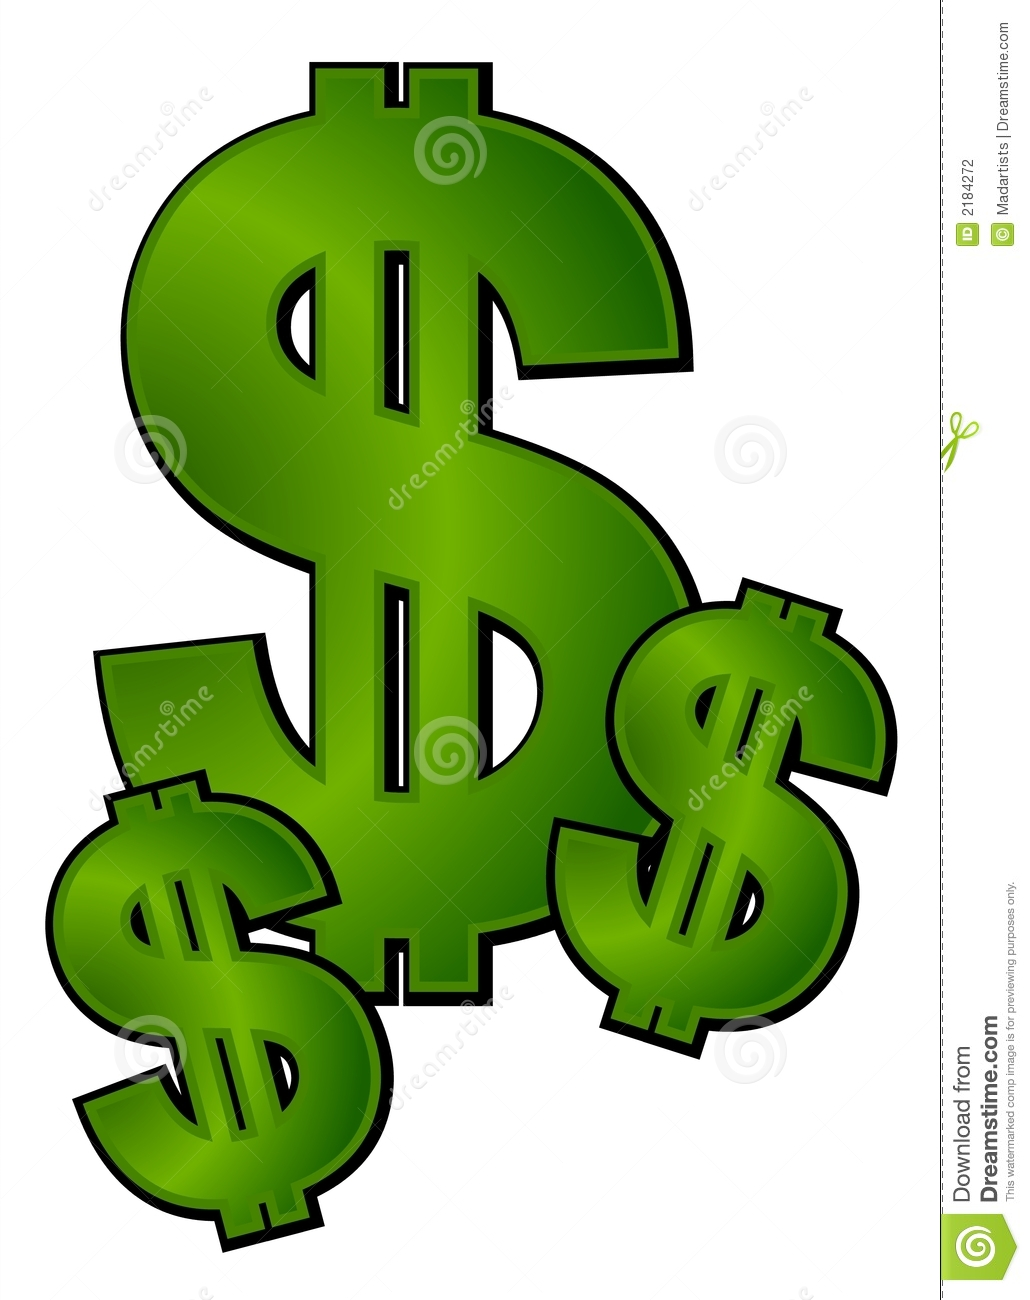 Images Of Money Signs Clipart Free Download Best Images Of Money